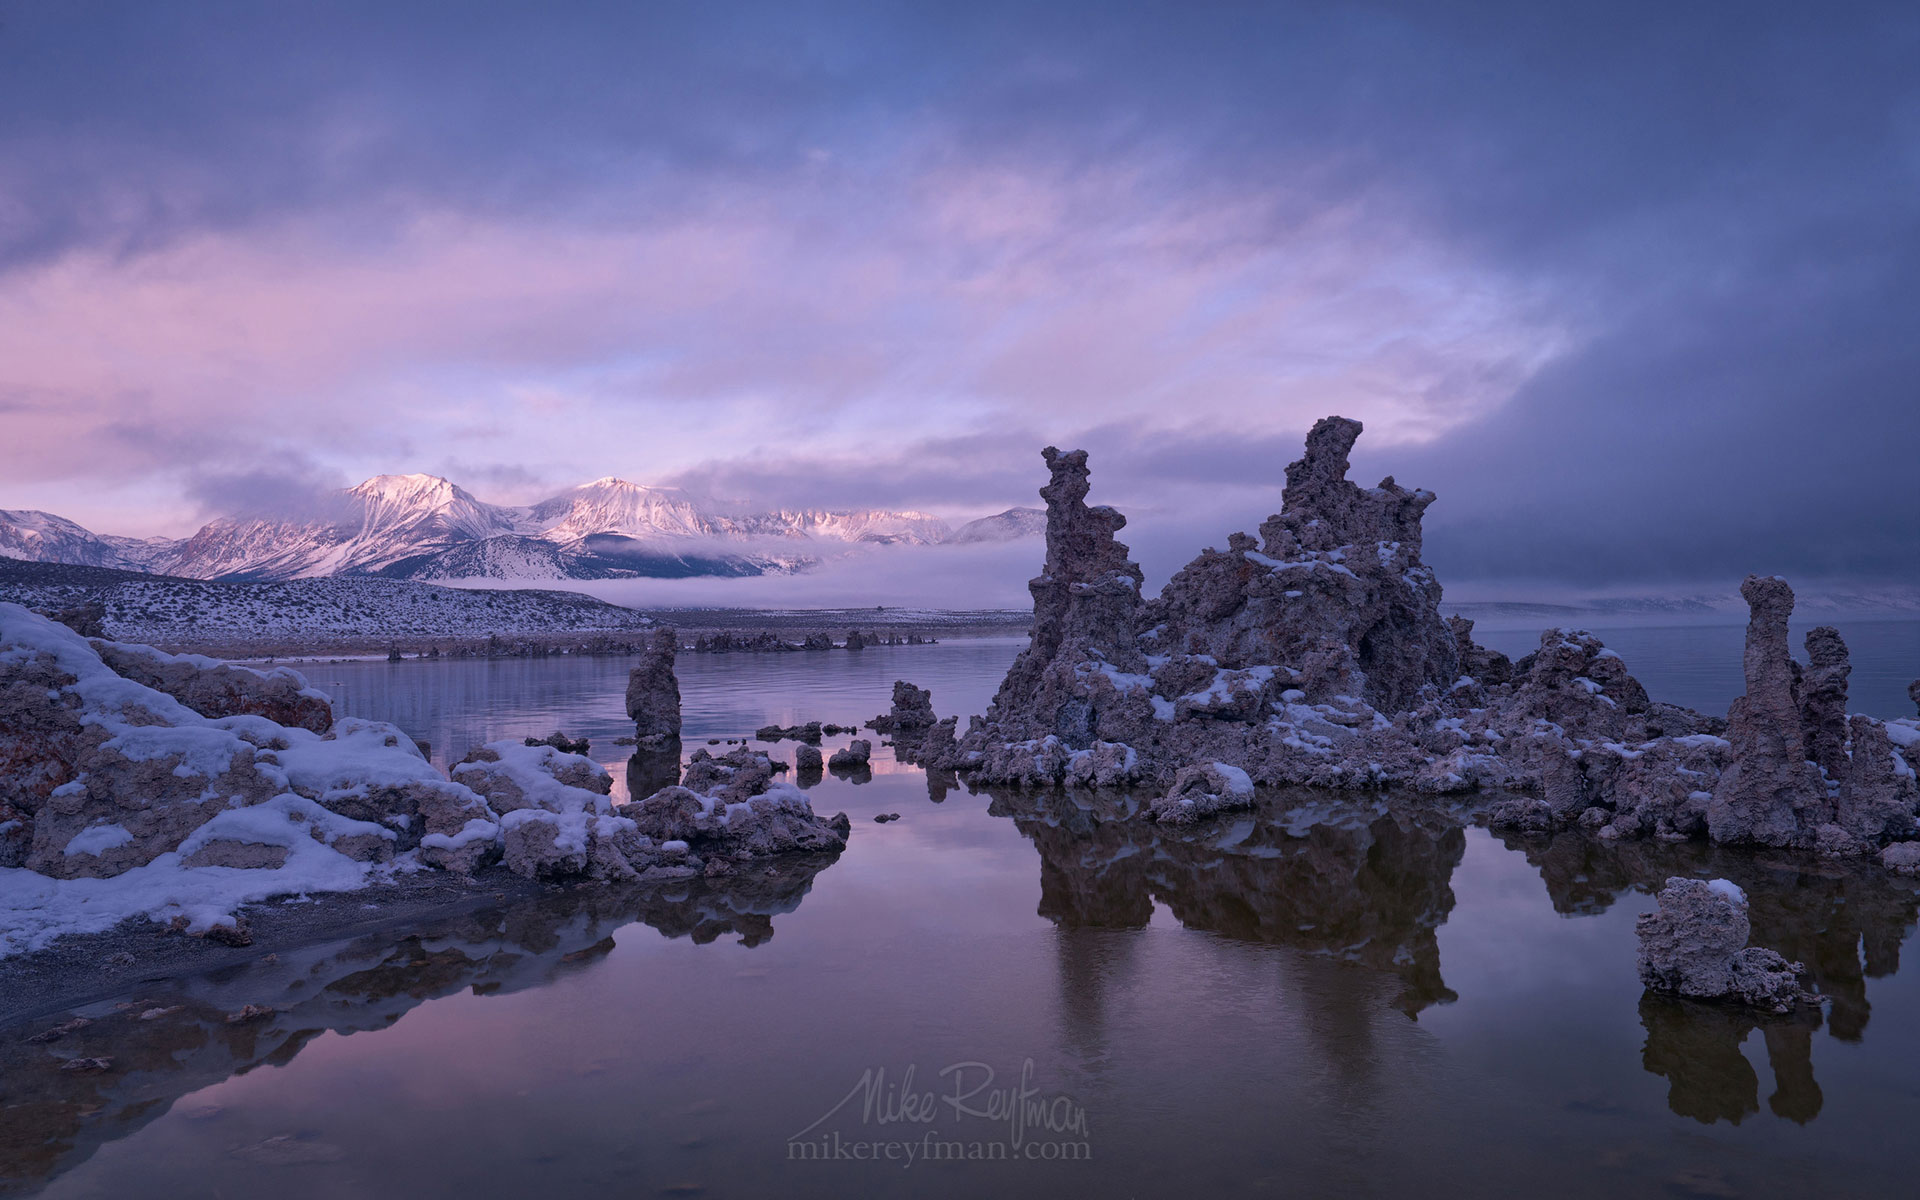 Mono Lake, Tufa State Natural Reserve, Eastern Sierra, California, USA ML1-MRN3X0737 - Mono Lake Tufa State Natural Reserve, Eastern Sierra, California - Mike Reyfman Photography